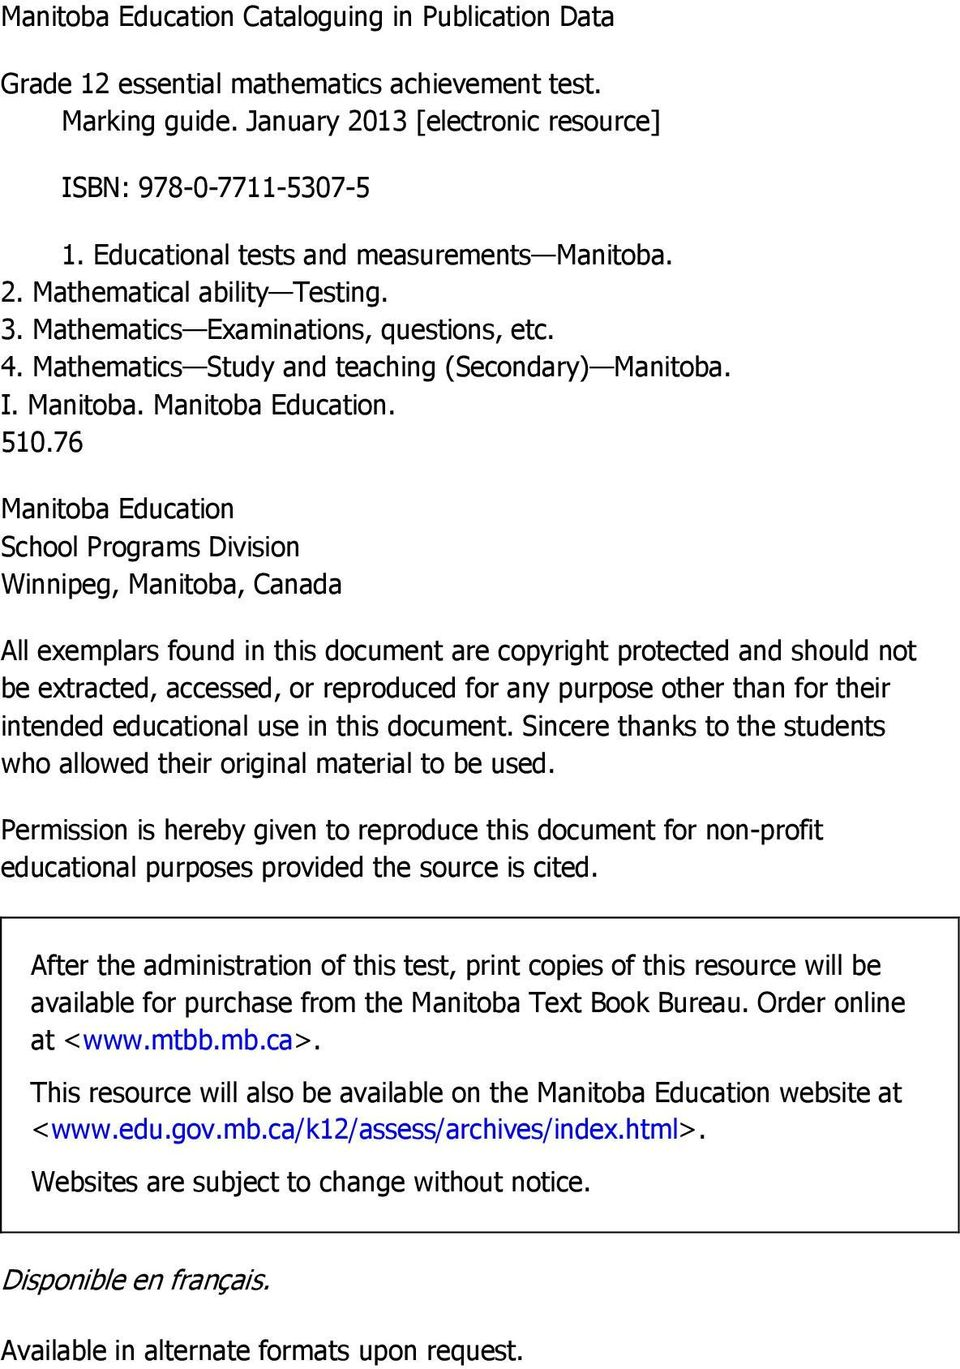 510.76 Manitoba Education School Programs Division Winnipeg, Manitoba, Canada All exemplars found in this document are copyright protected and should not be extracted, accessed, or reproduced for any